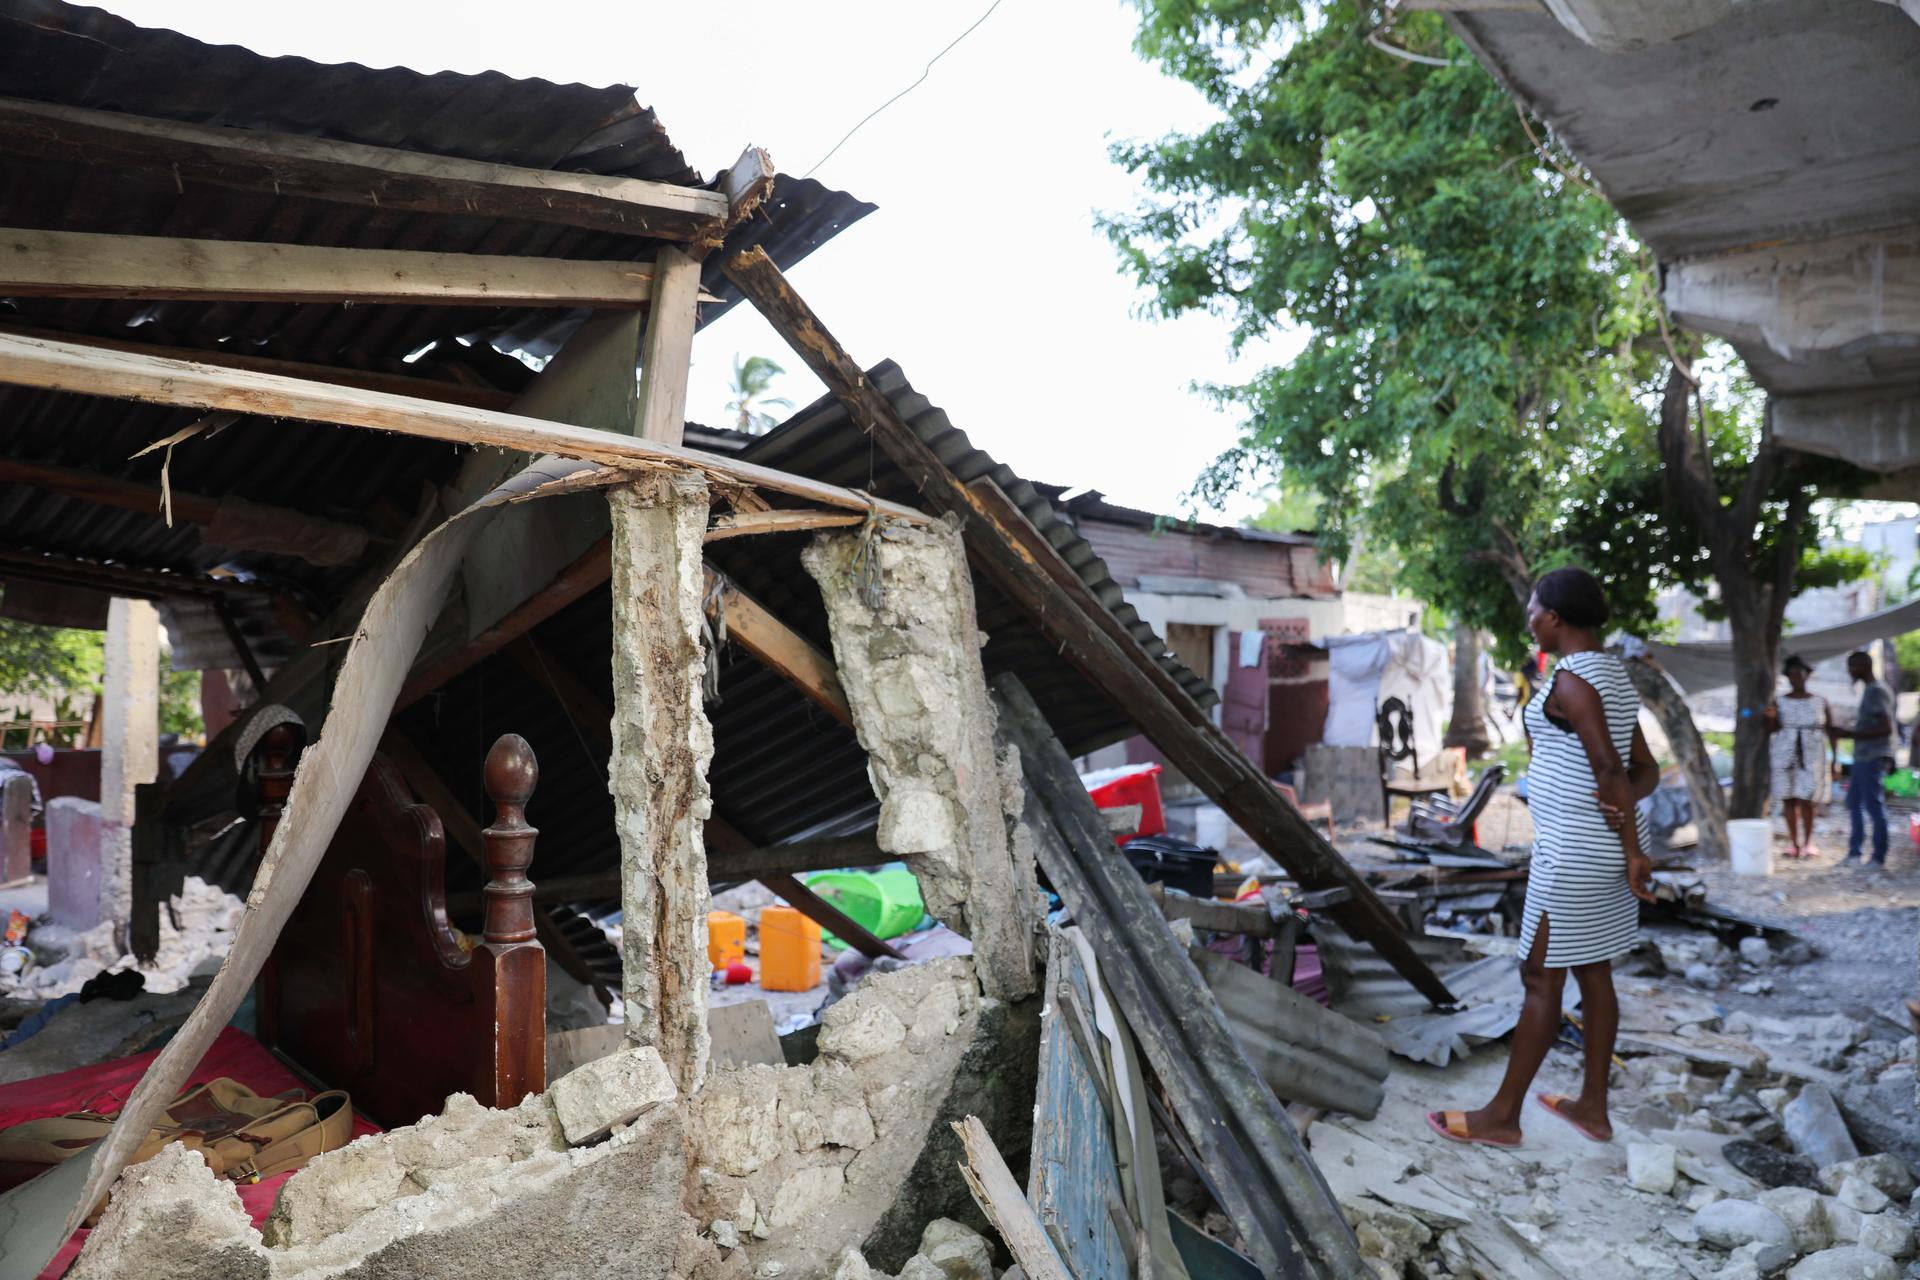 Our response and immediate action in Haiti